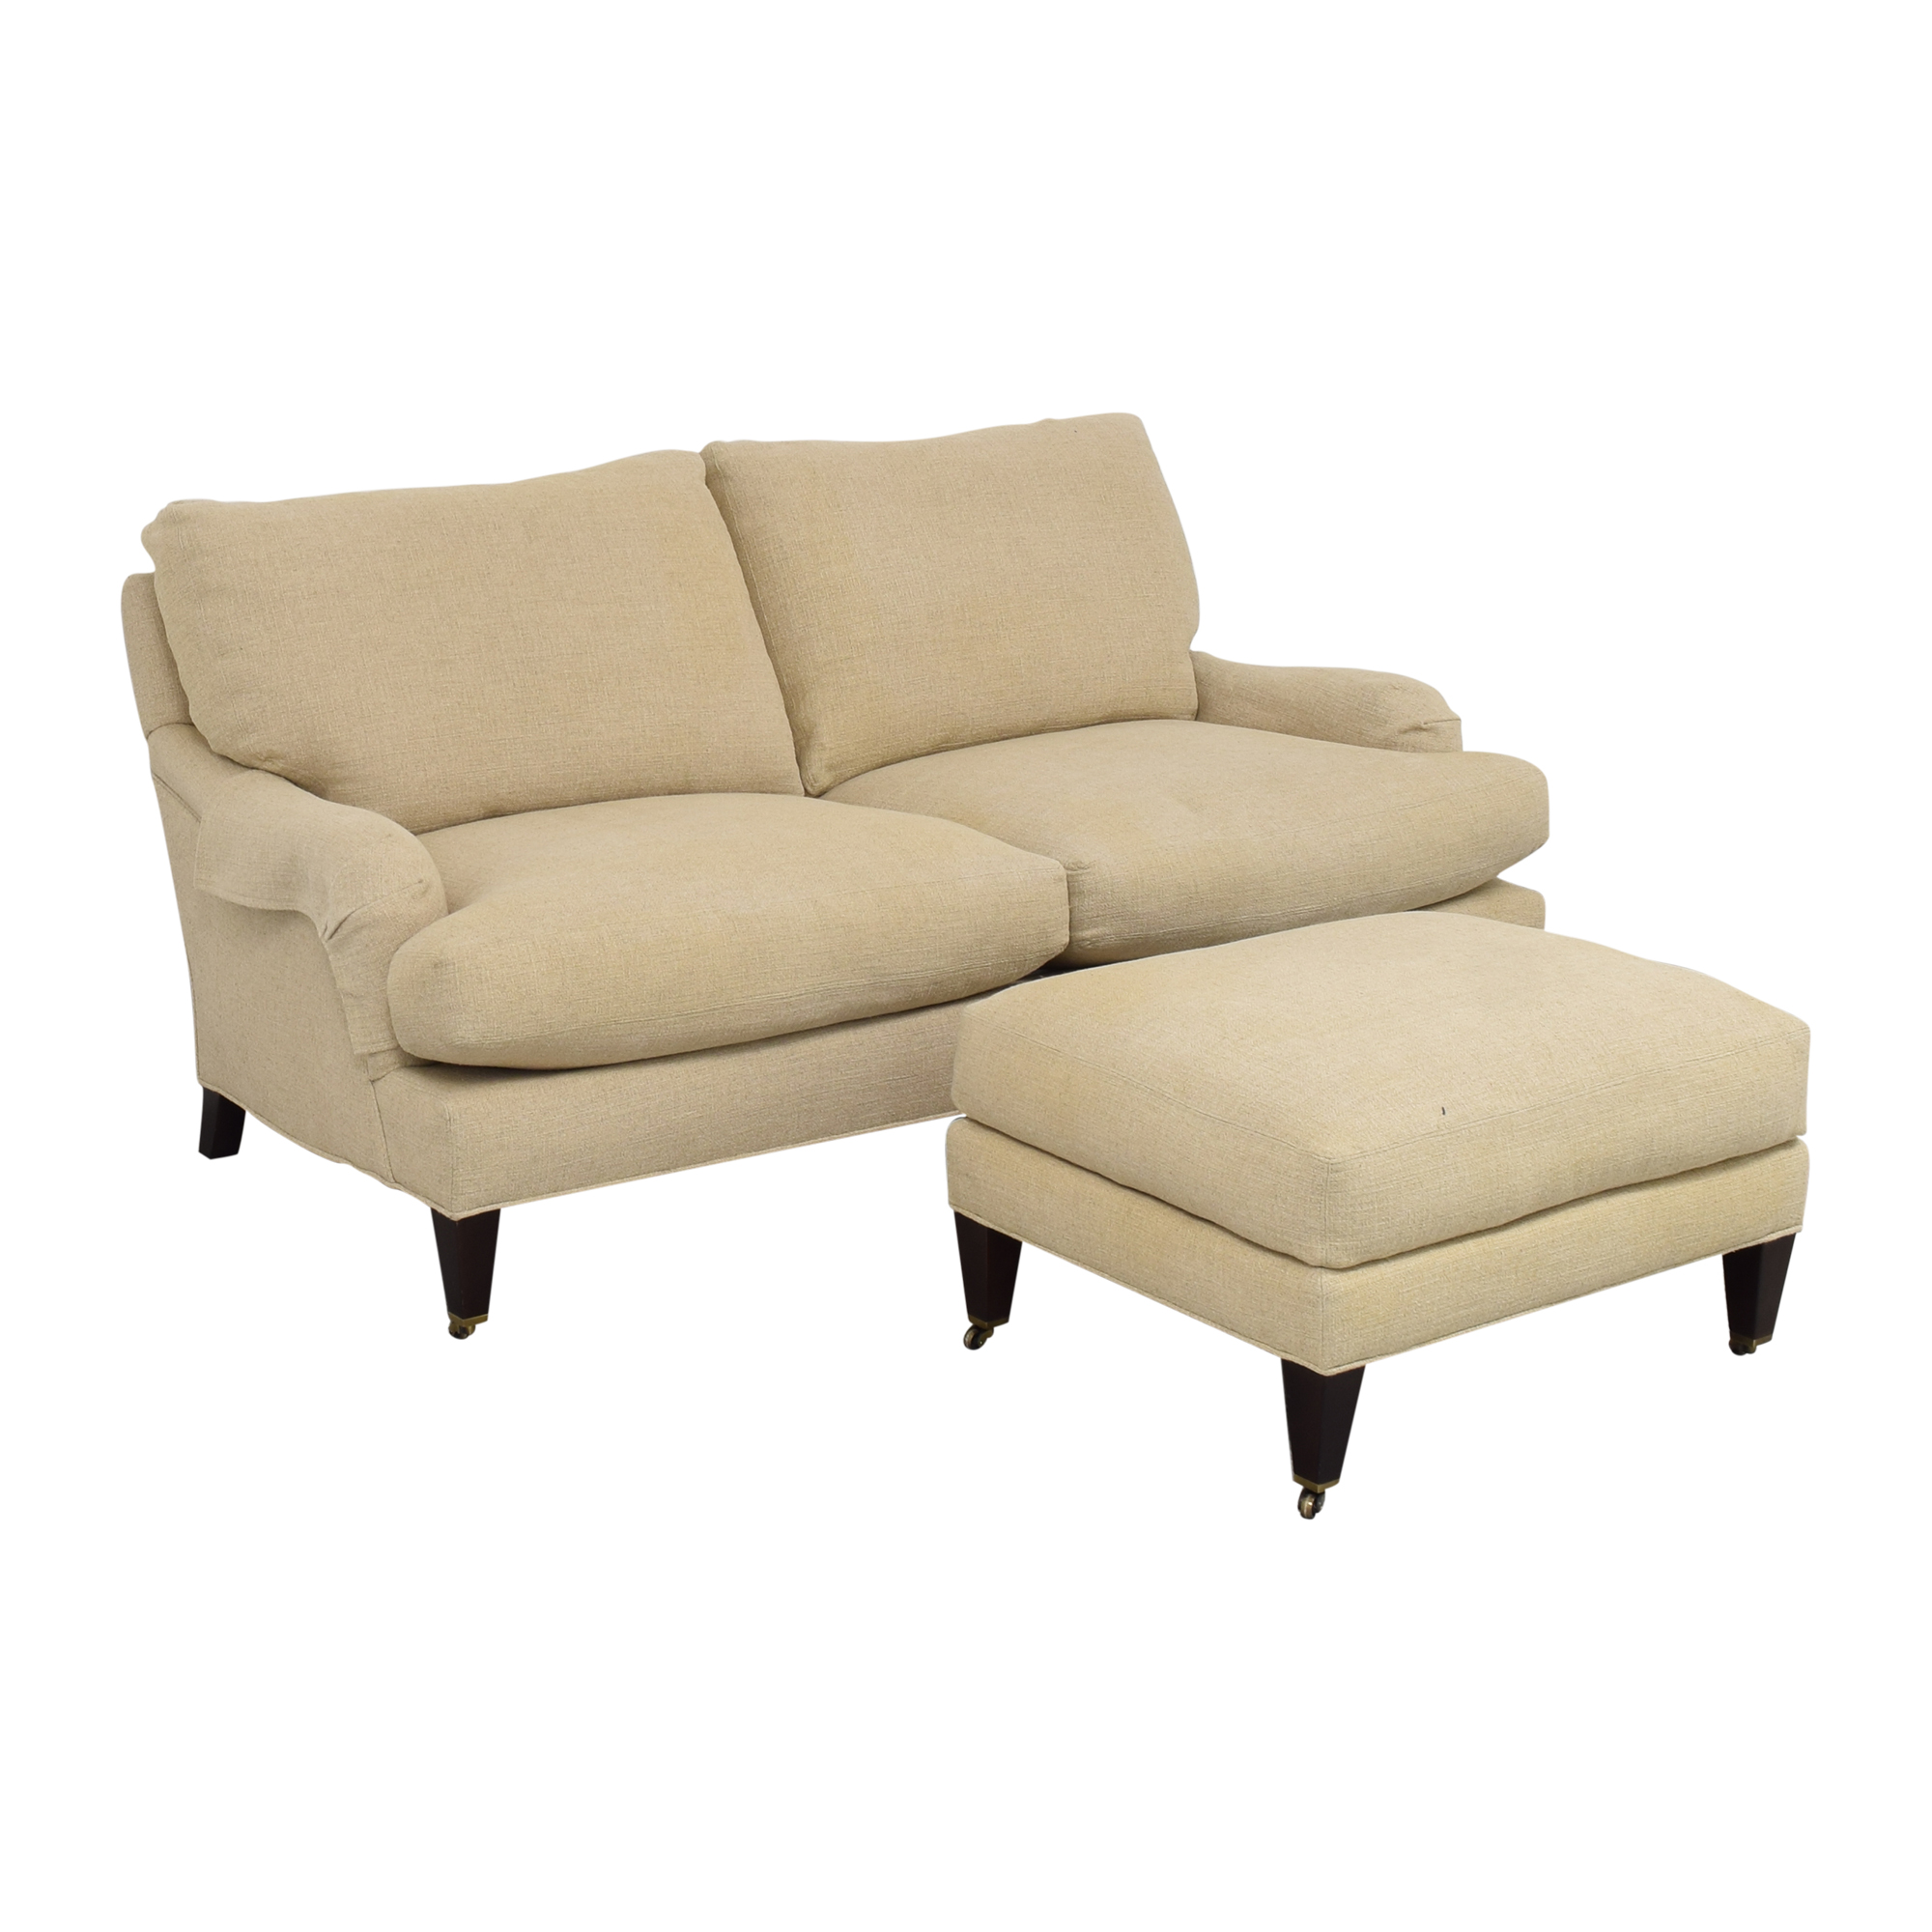 Crate & Barrel Crate & Barrel Essex Sofa with Ottoman coupon